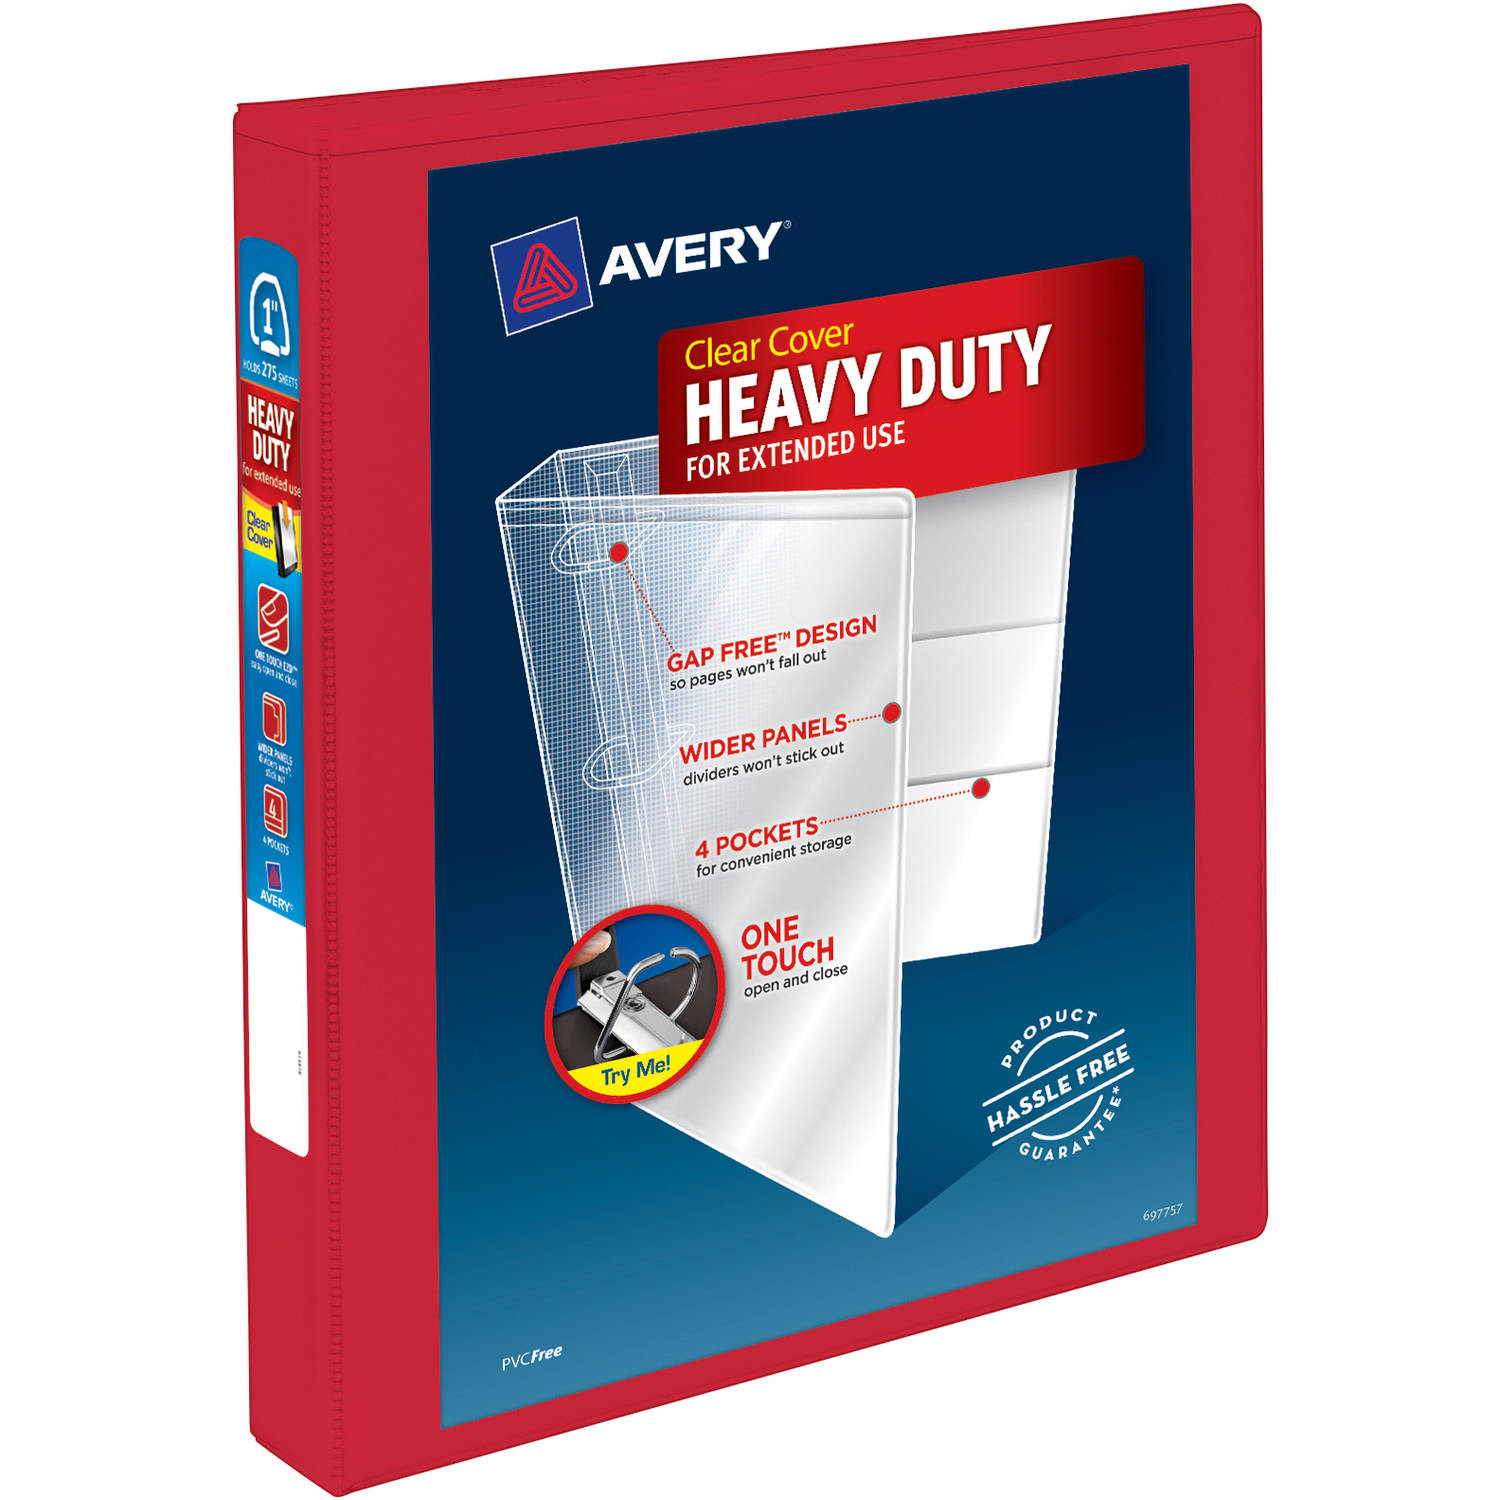 Avery Clear Cover Heavy Duty Binder, 1.0 CT